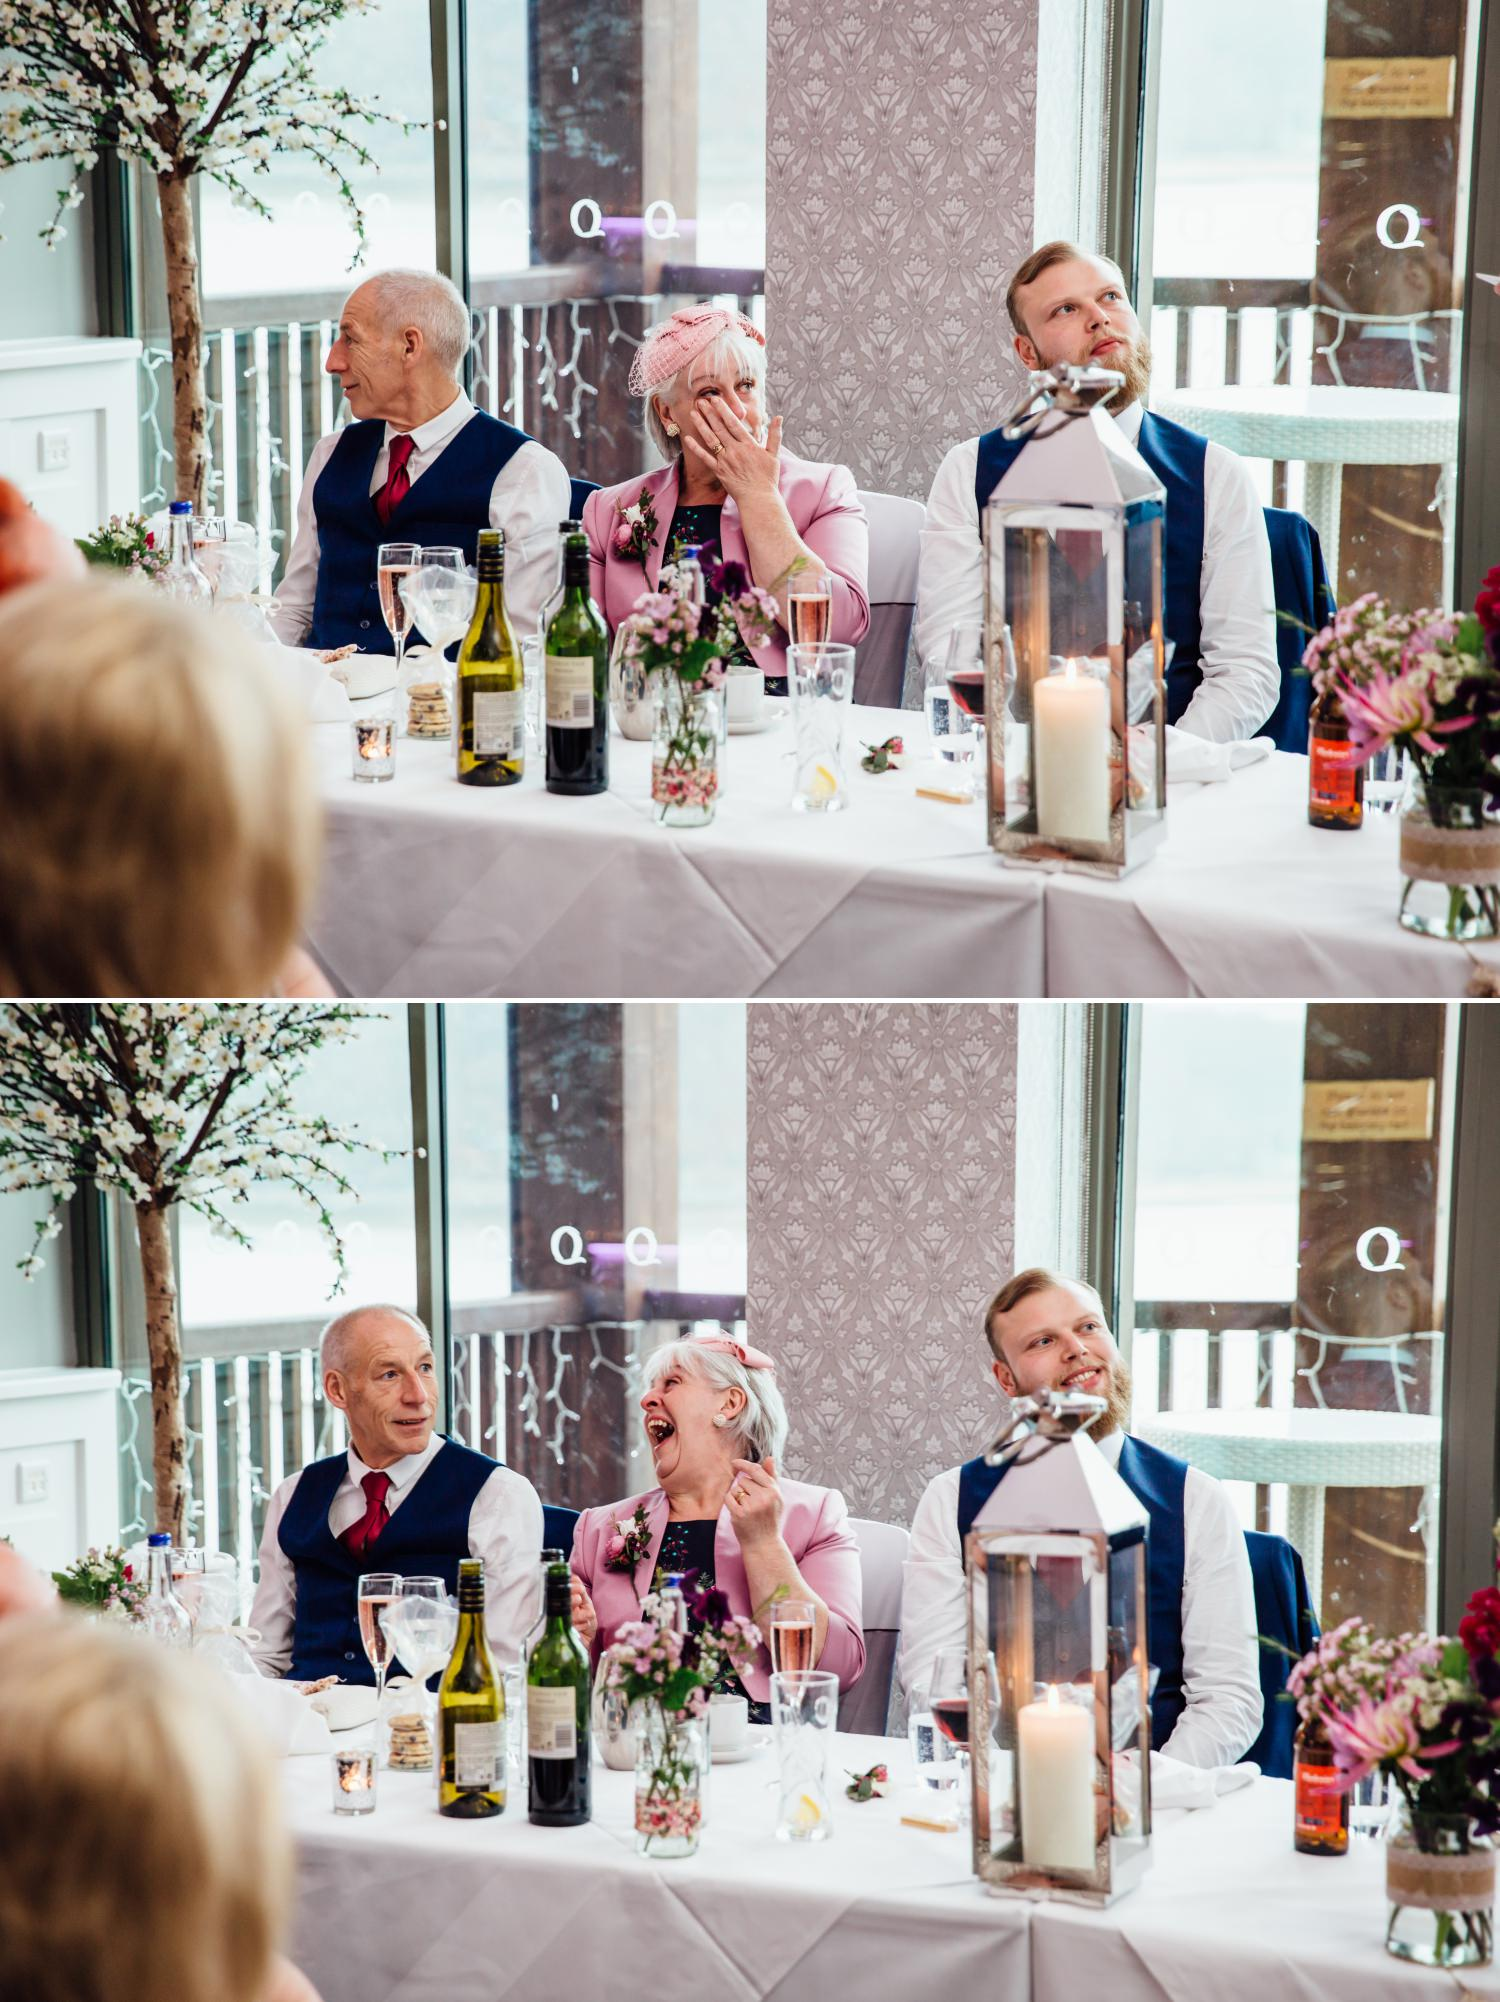 Emotional speeches Wedding Photograph at Quay Hotel, North Wales